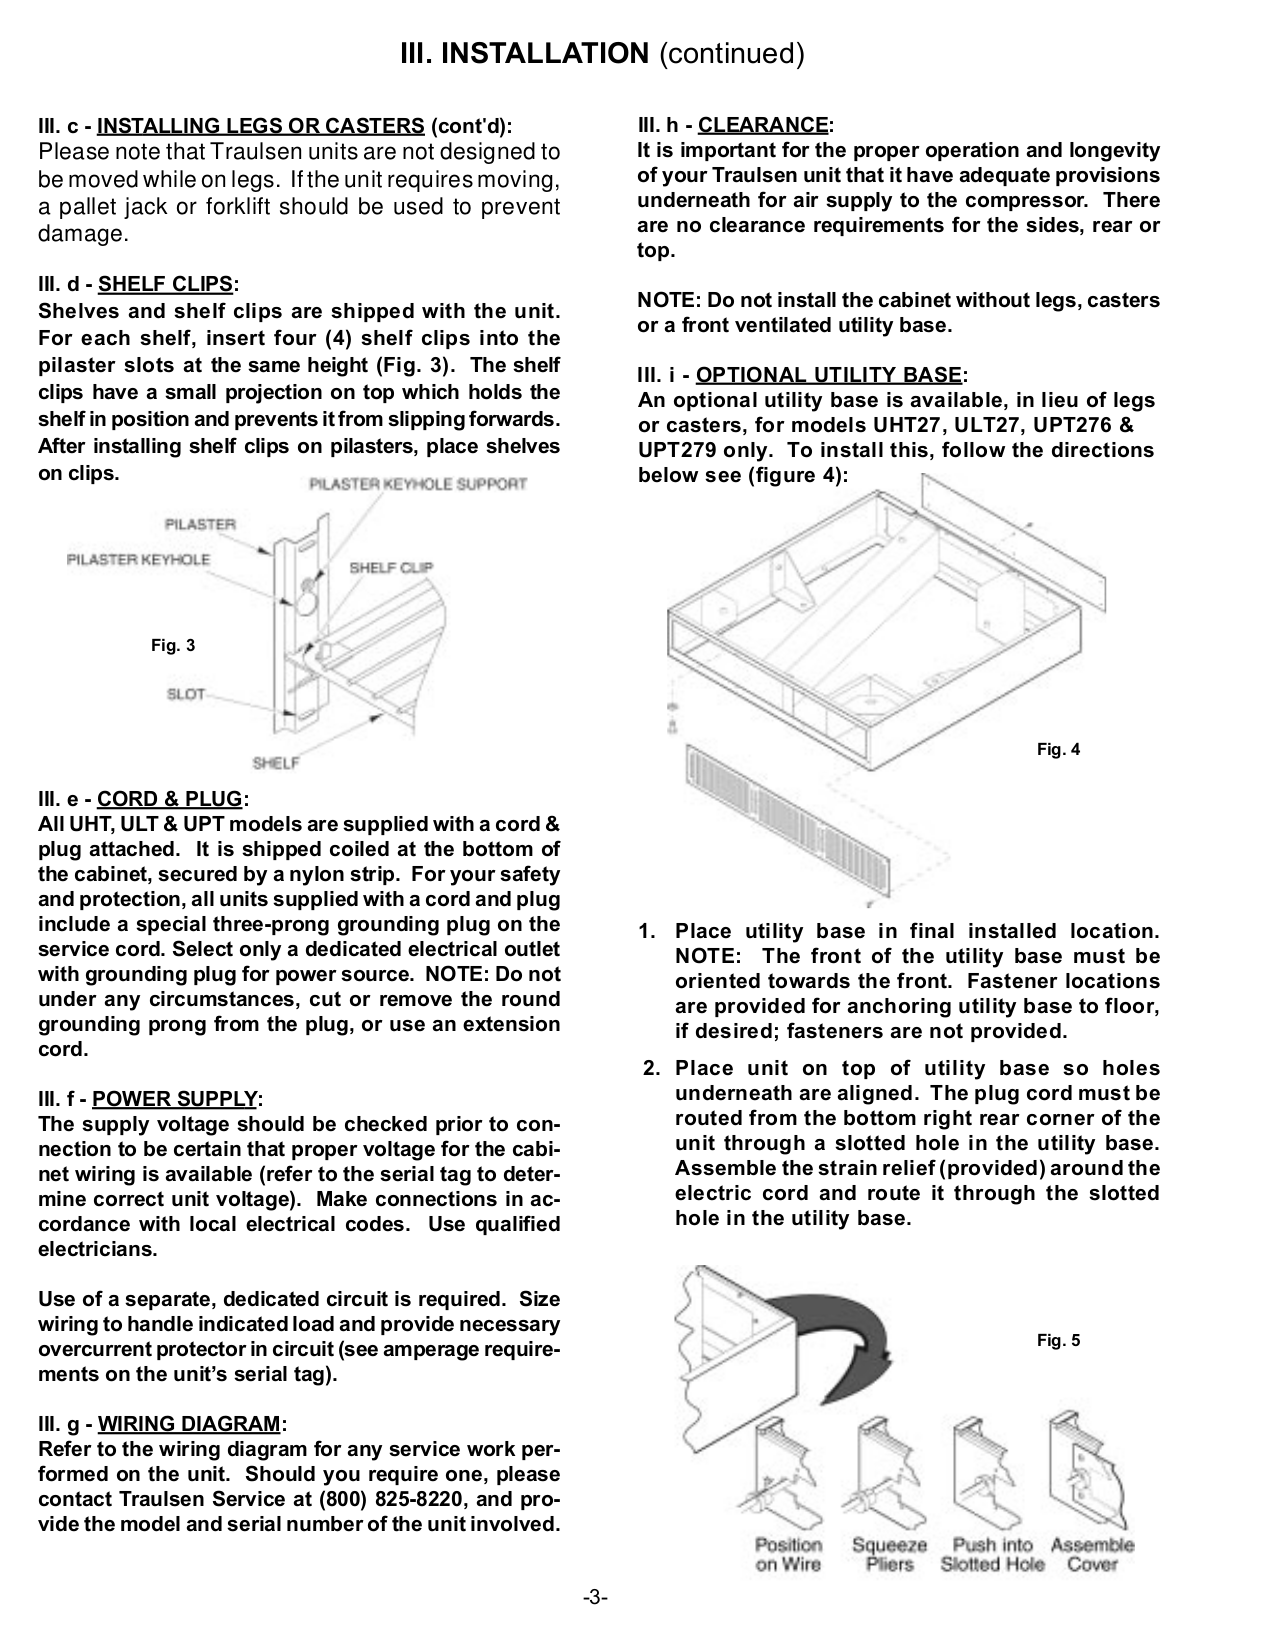 Pdf manual for traulsen freezer ult27 r traulsen freezer ult27 r pdf page preview cheapraybanclubmaster Images